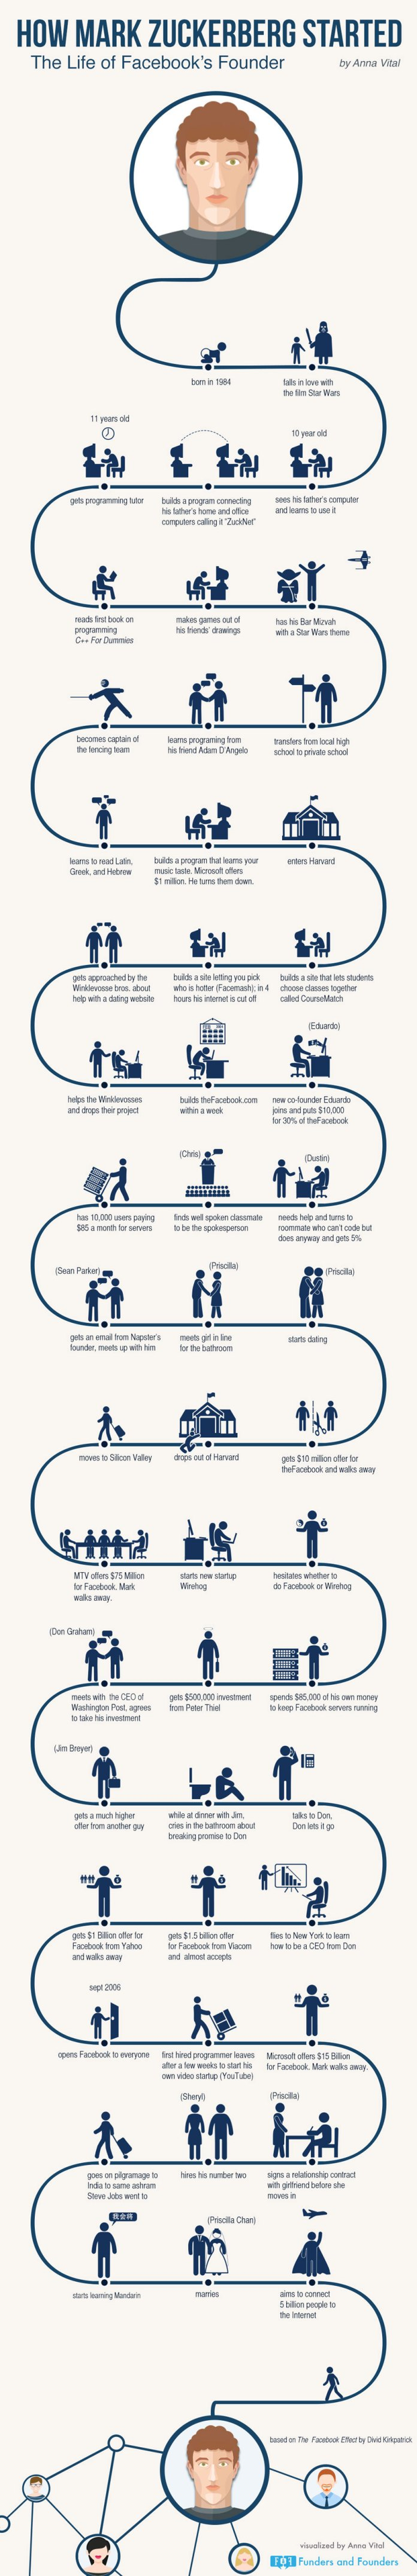 How-Mark-Zuckerberg-Started.-Motivational-And-Inspirational-infographic